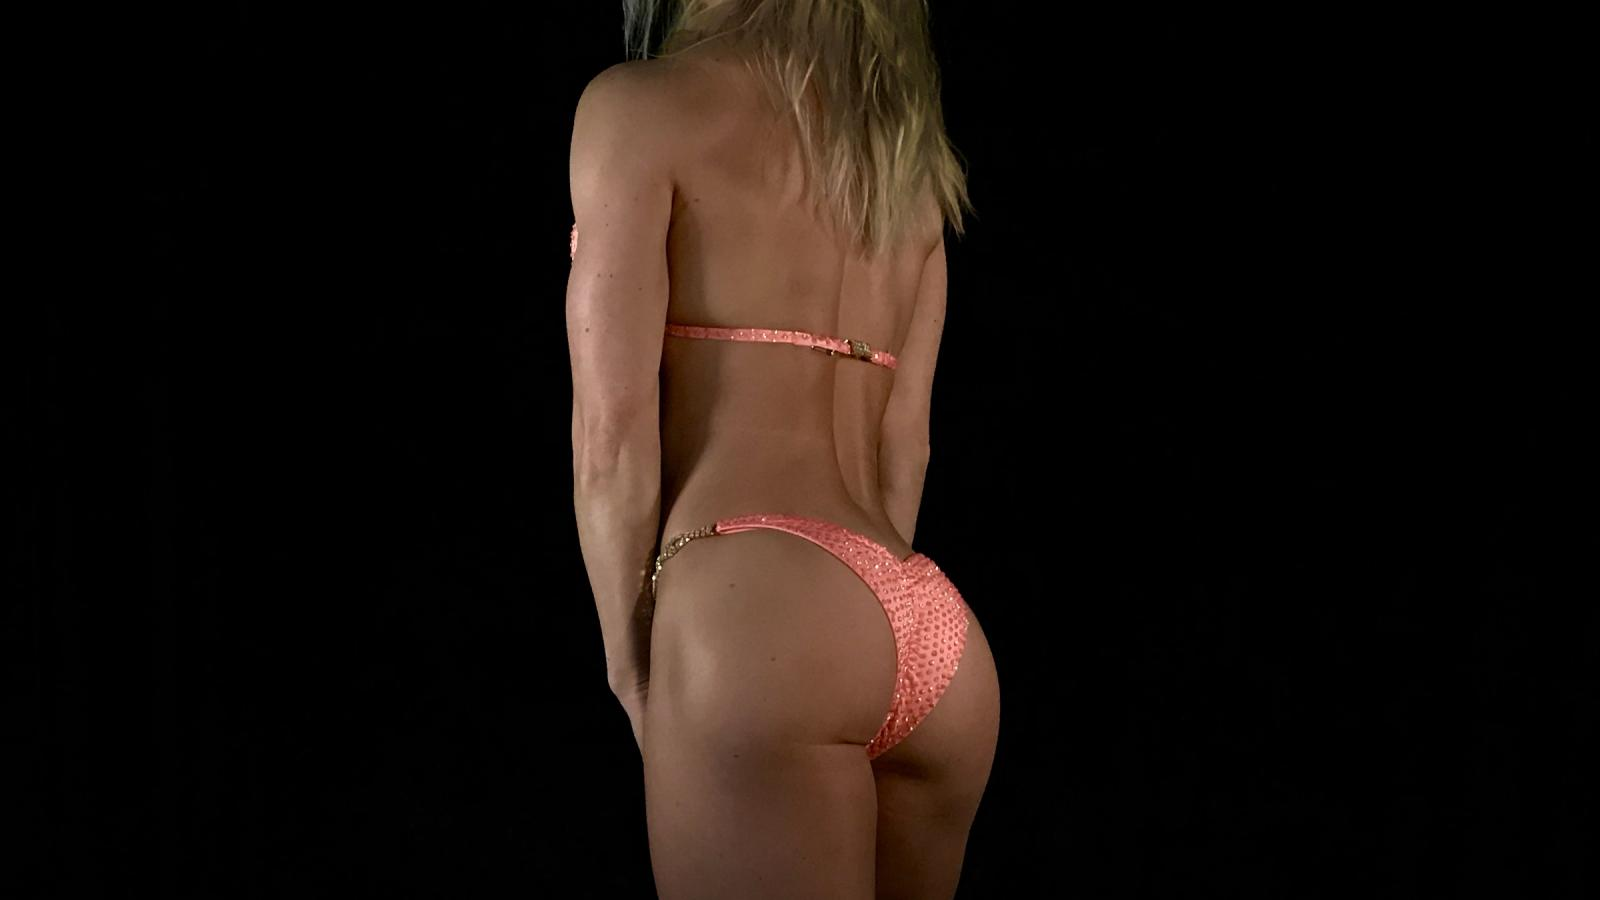 Penelope Peach Bikini Competition Suit by Merry Christine Bodywear (side view)